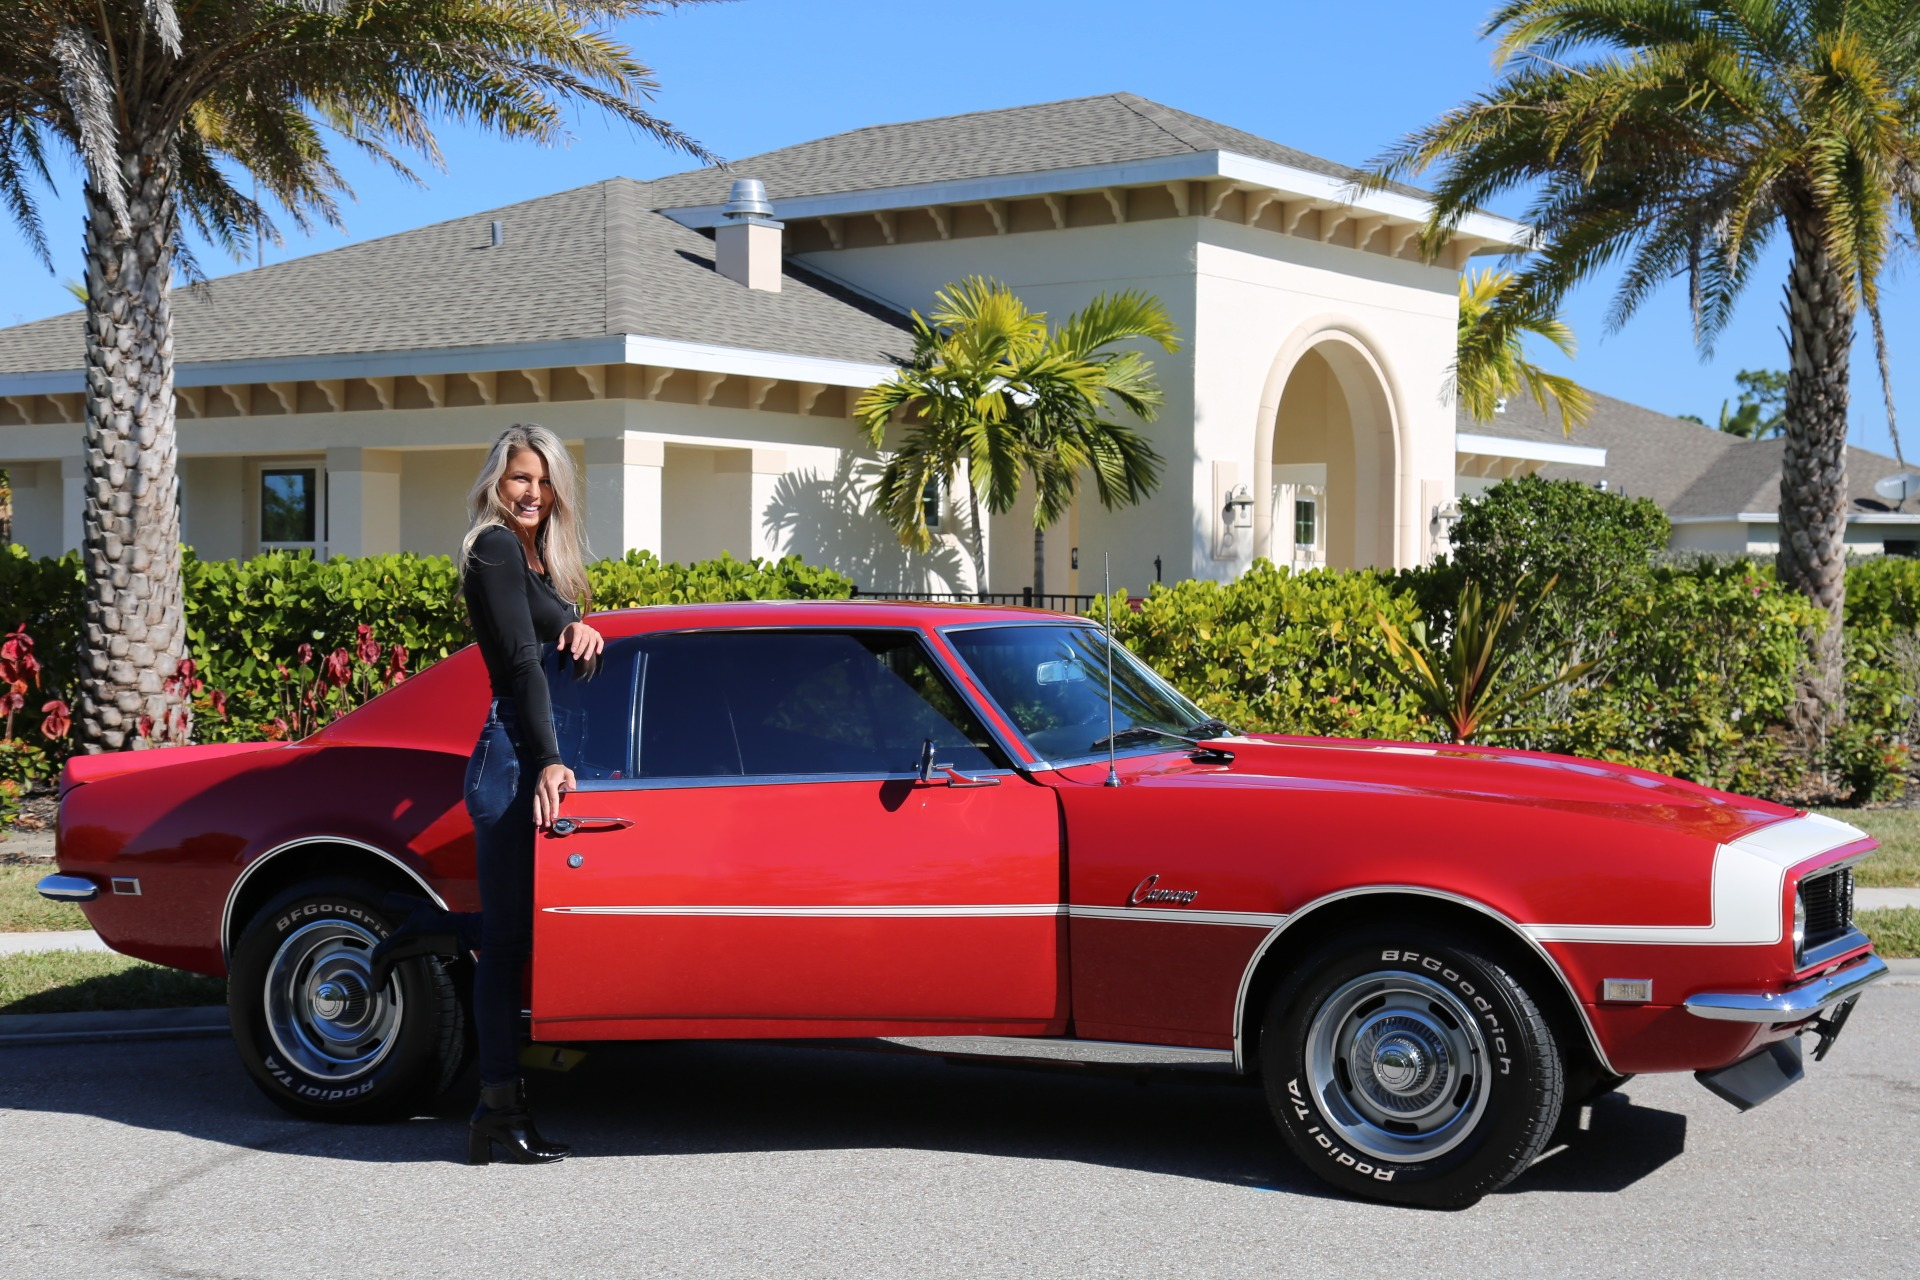 Used 1968 Chevrolet Camaro Camaro V8 350 Auto for sale Sold at Muscle Cars for Sale Inc. in Fort Myers FL 33912 6